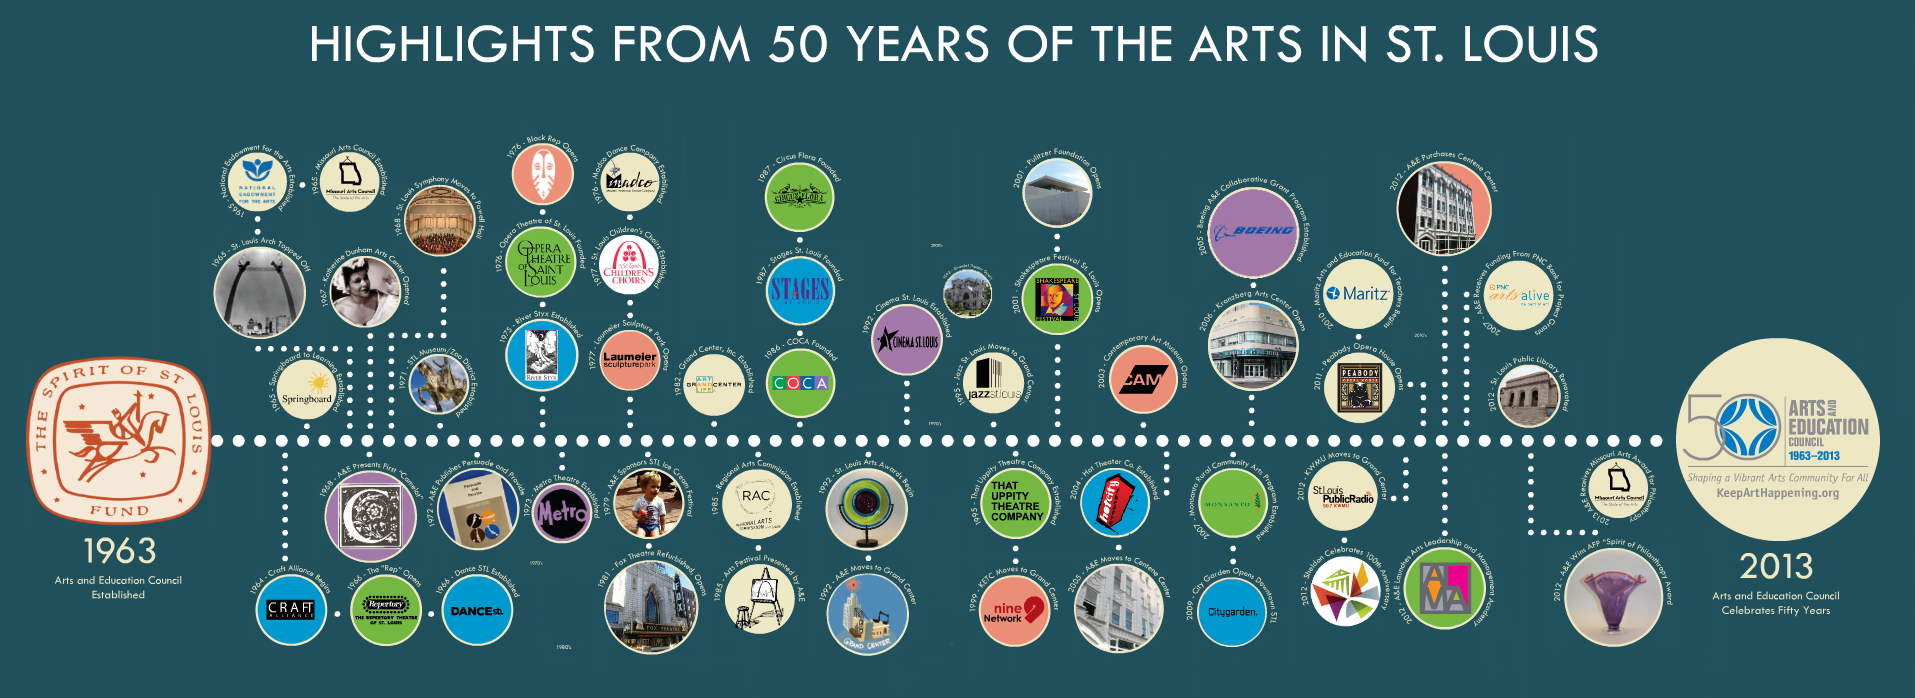 Arts & Education Council 50 Year Timeline